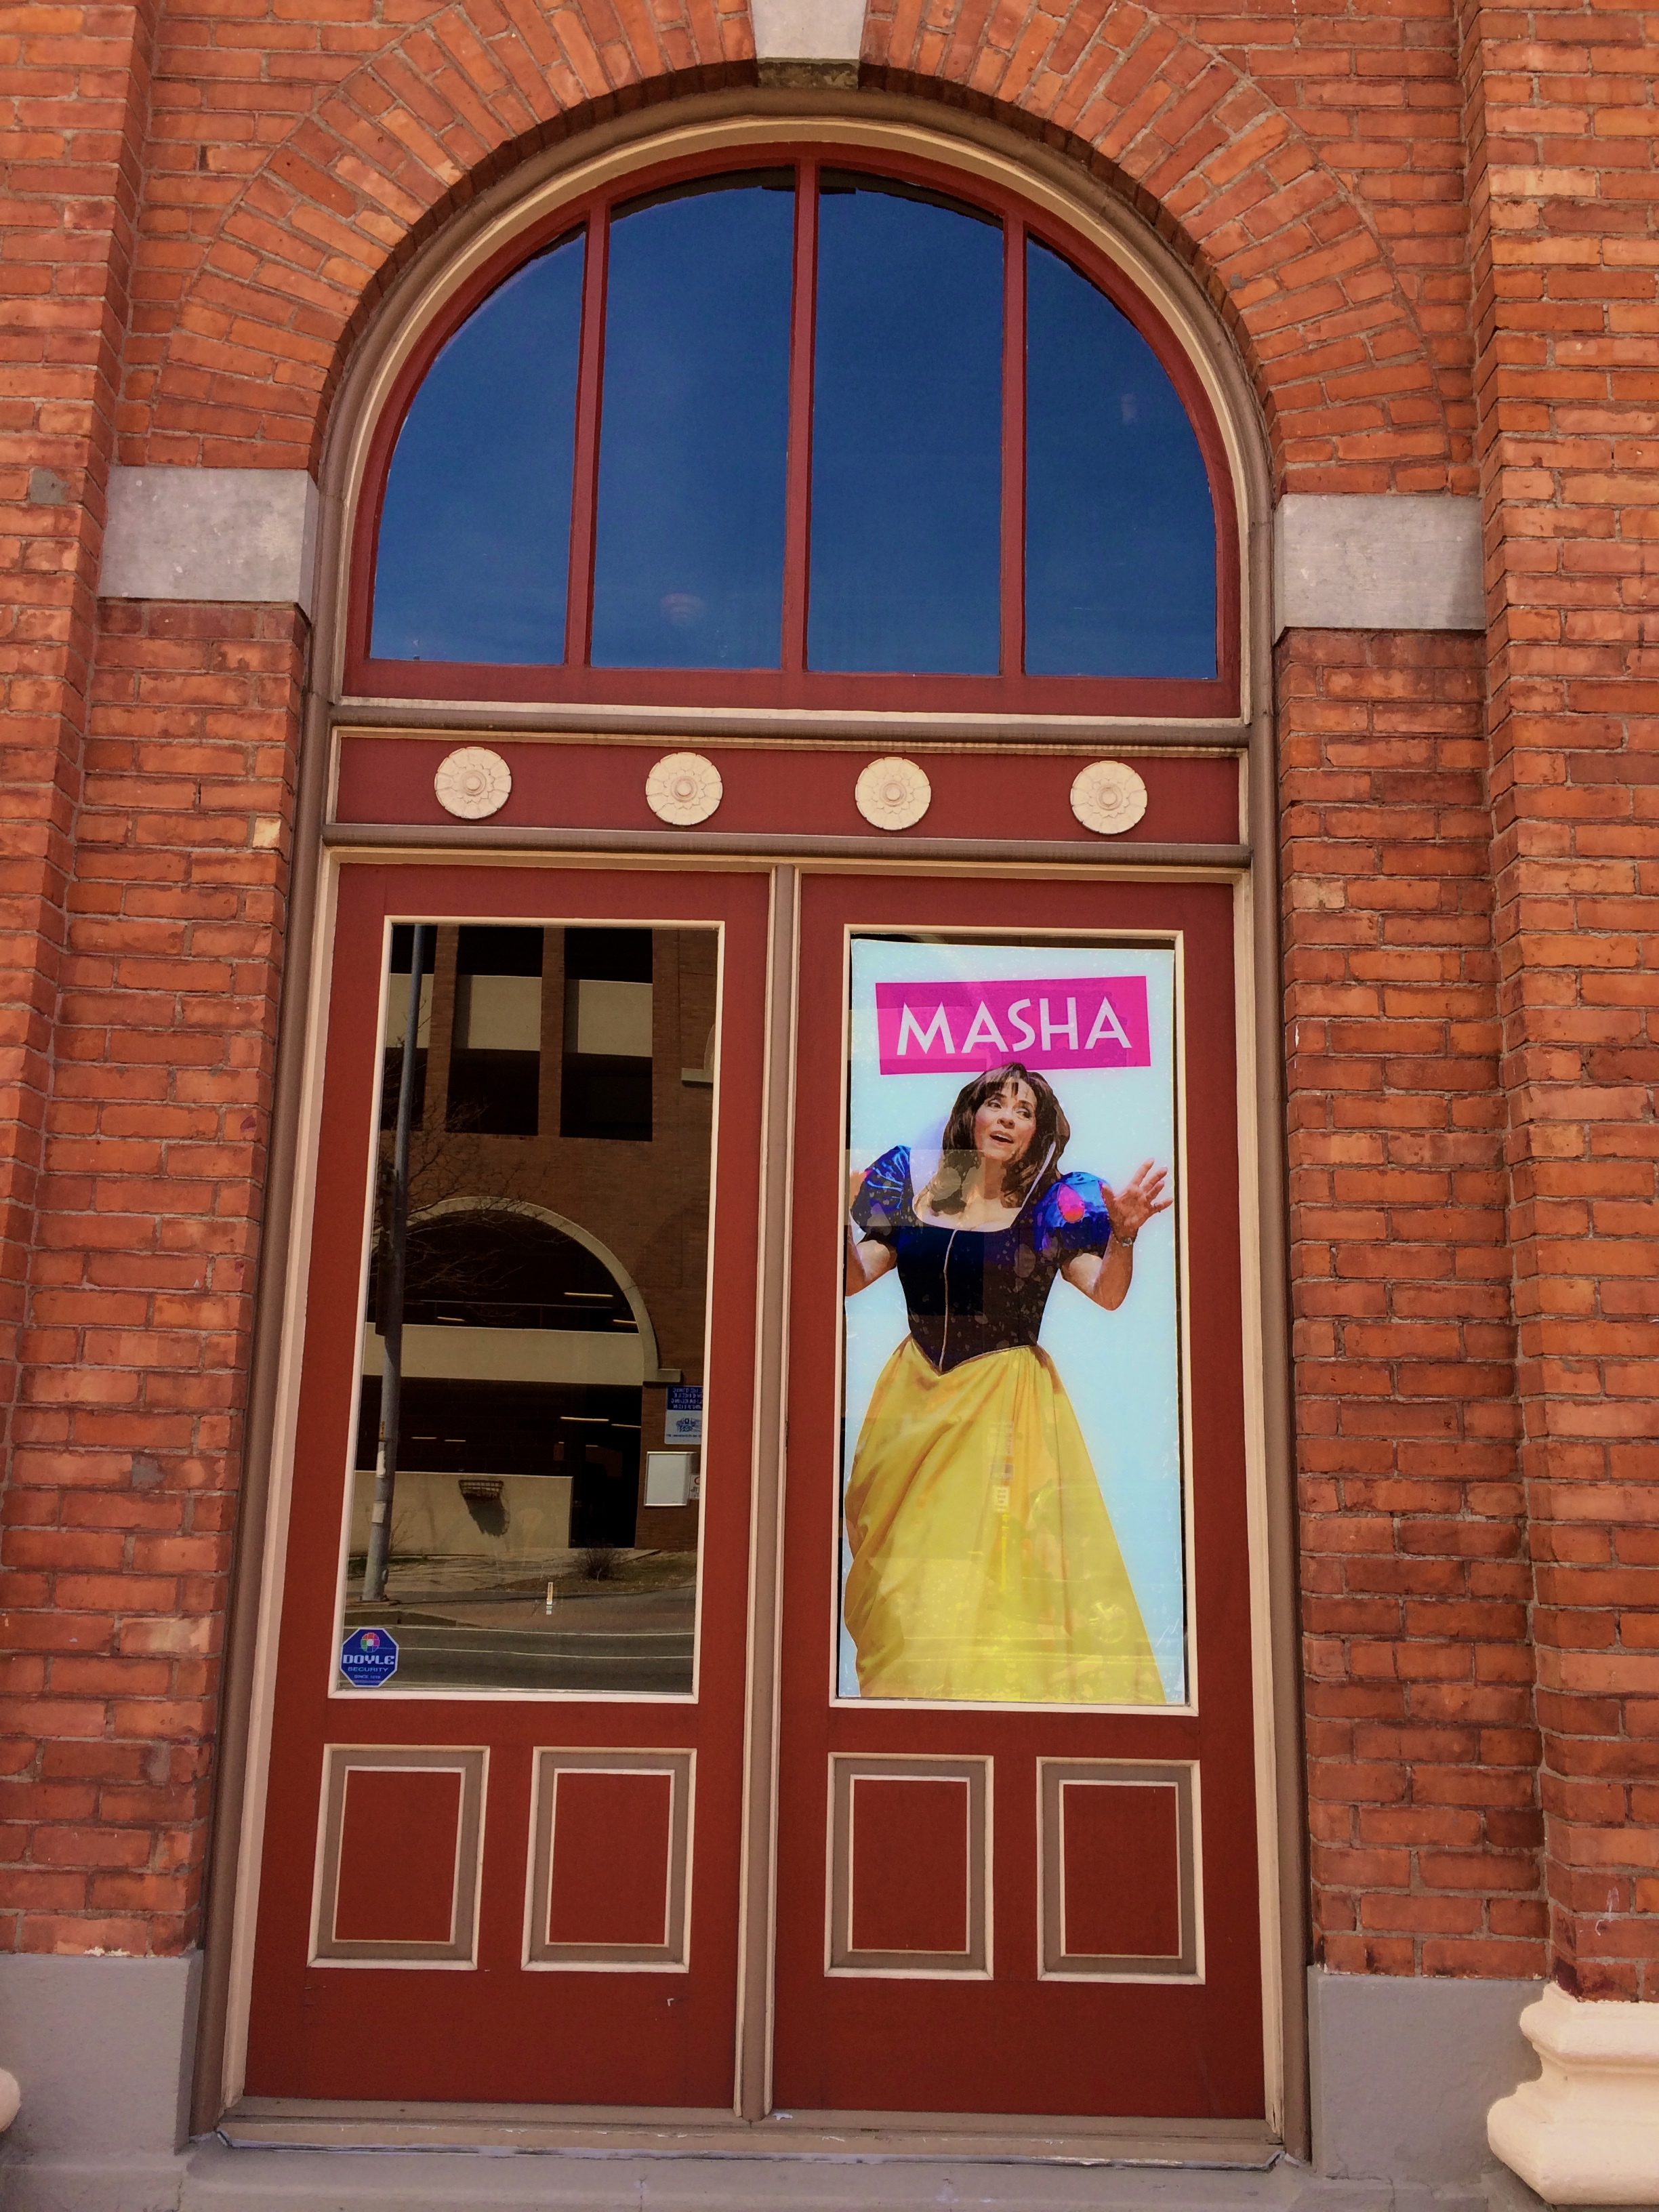 Outside the cafe in the window of GevaTheatre.org. #VanyaAndSoniaAndMashaAndSpike opening May 9, 2015.